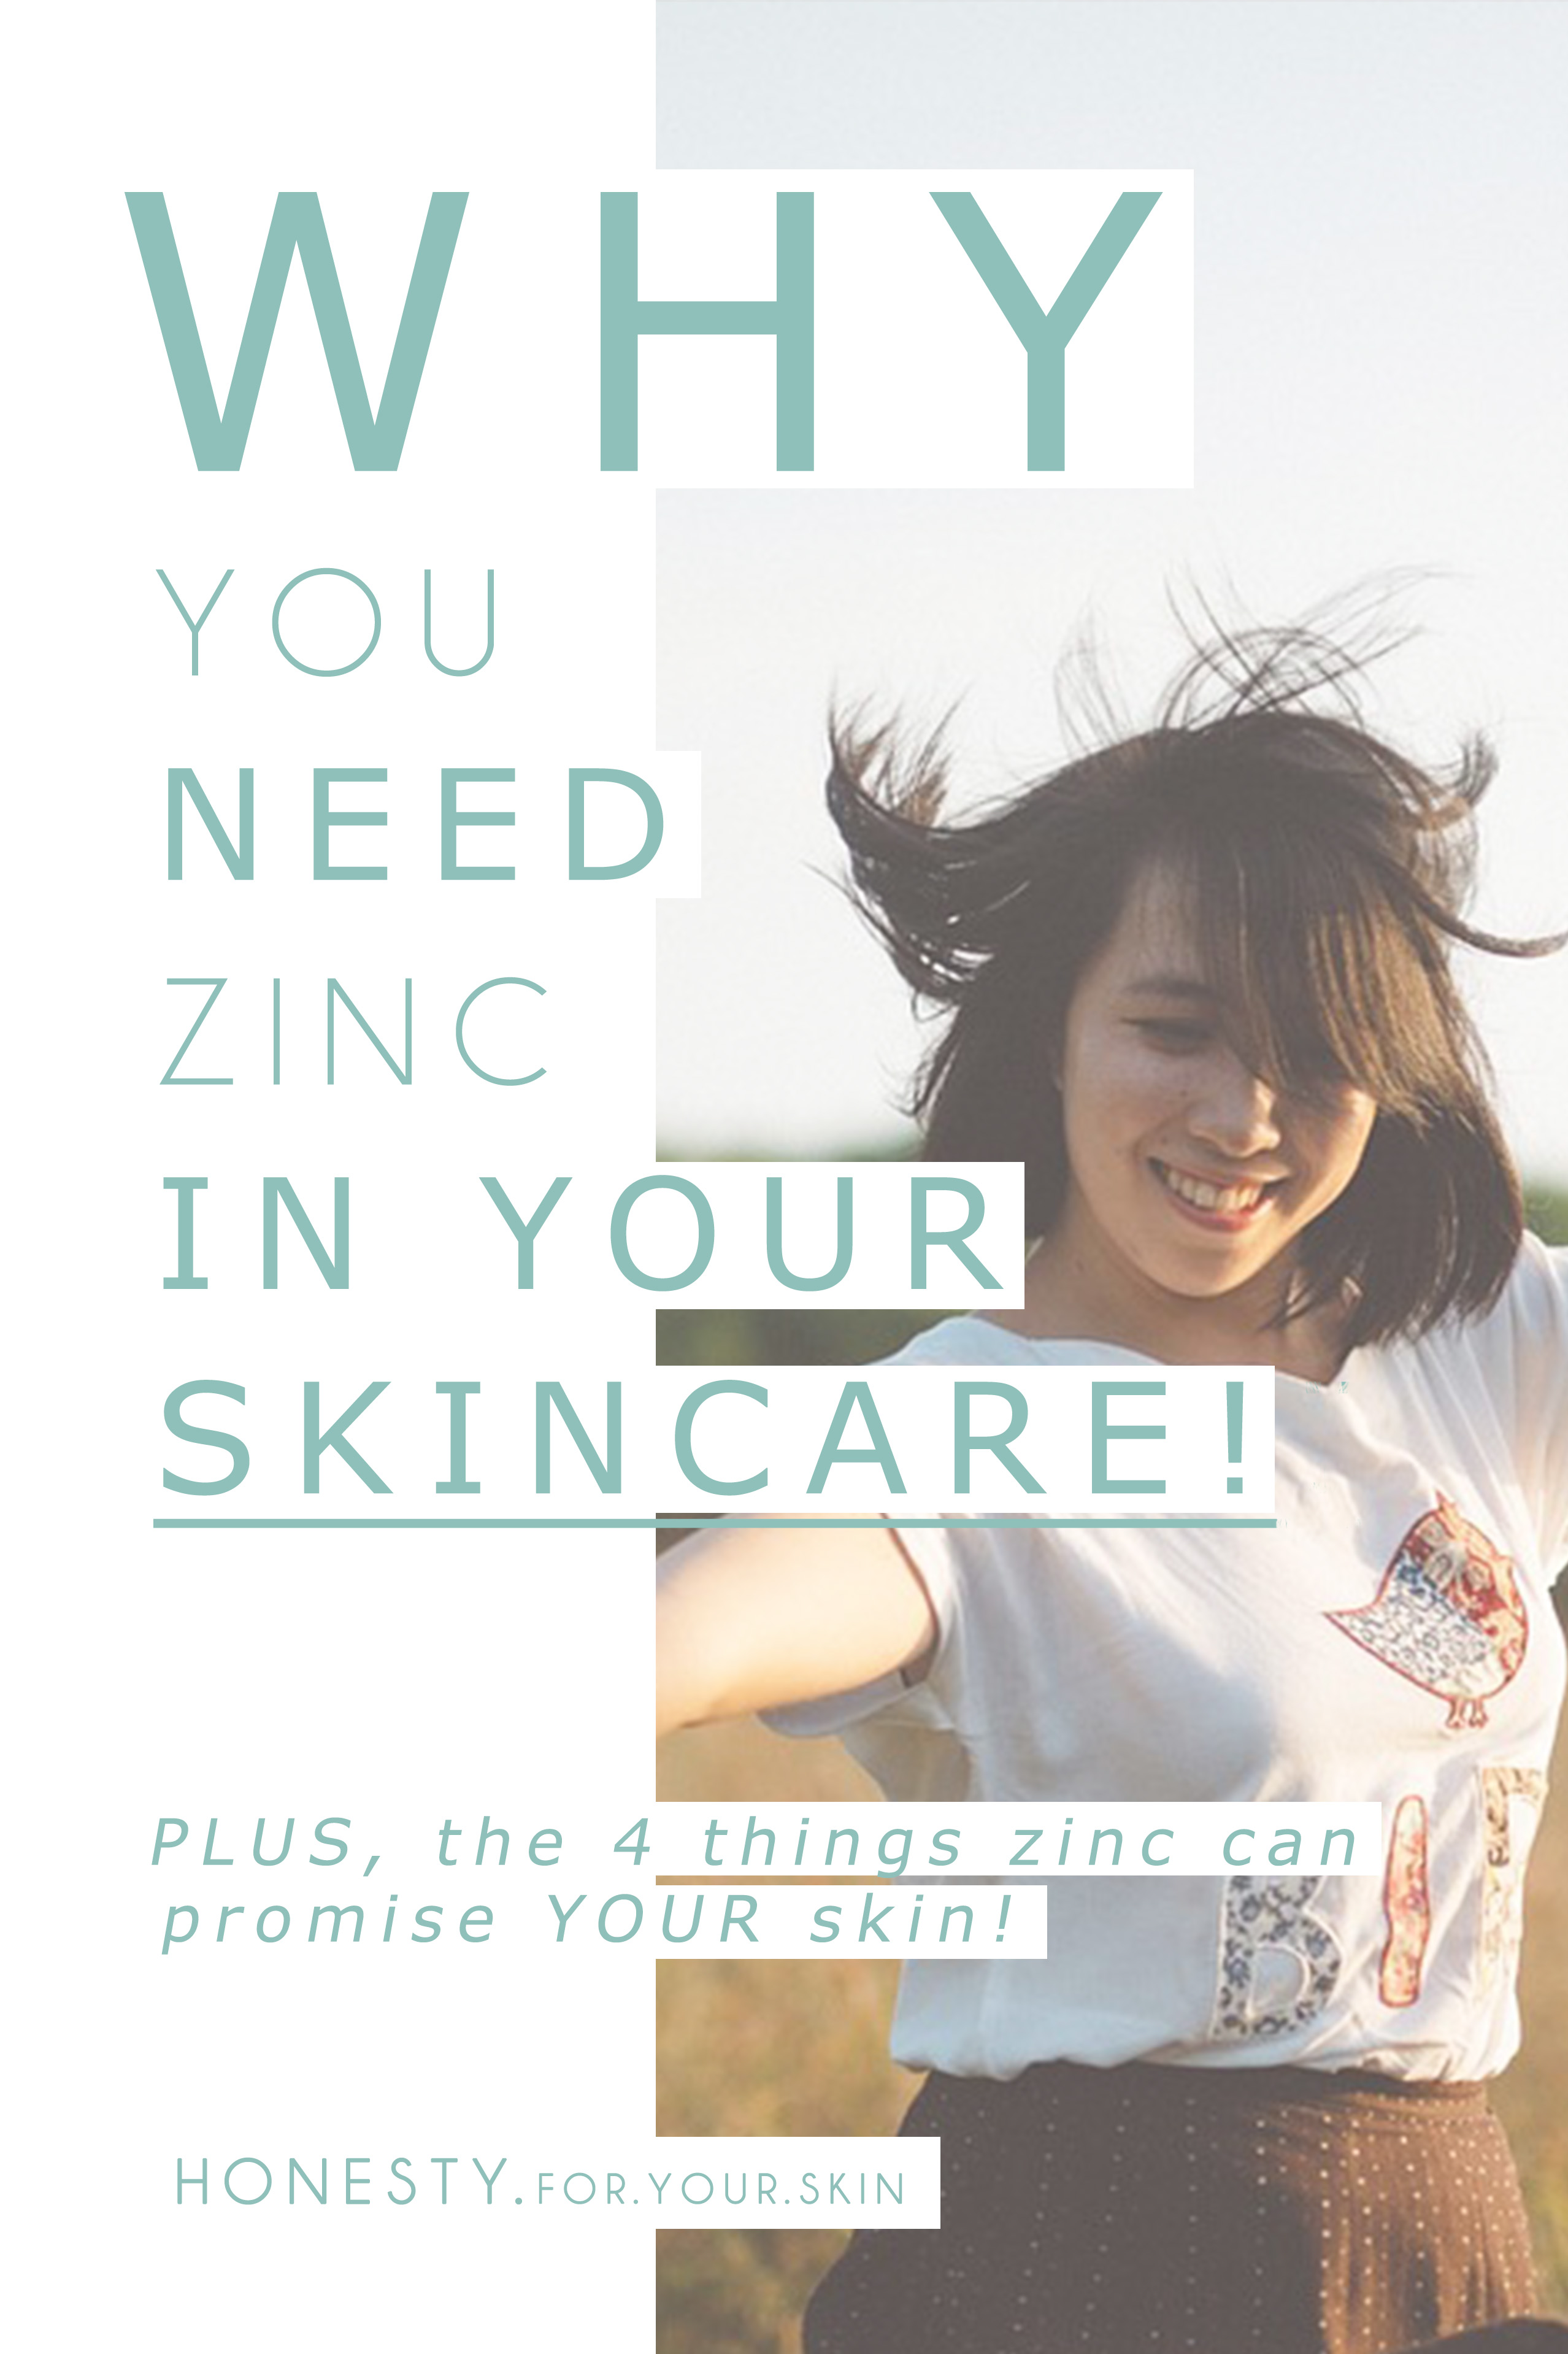 ALL you need to know about ZINC in skincare. The 4 awesome things Zinc does for skin... PLUS were to find Zinc in skincare and food!!